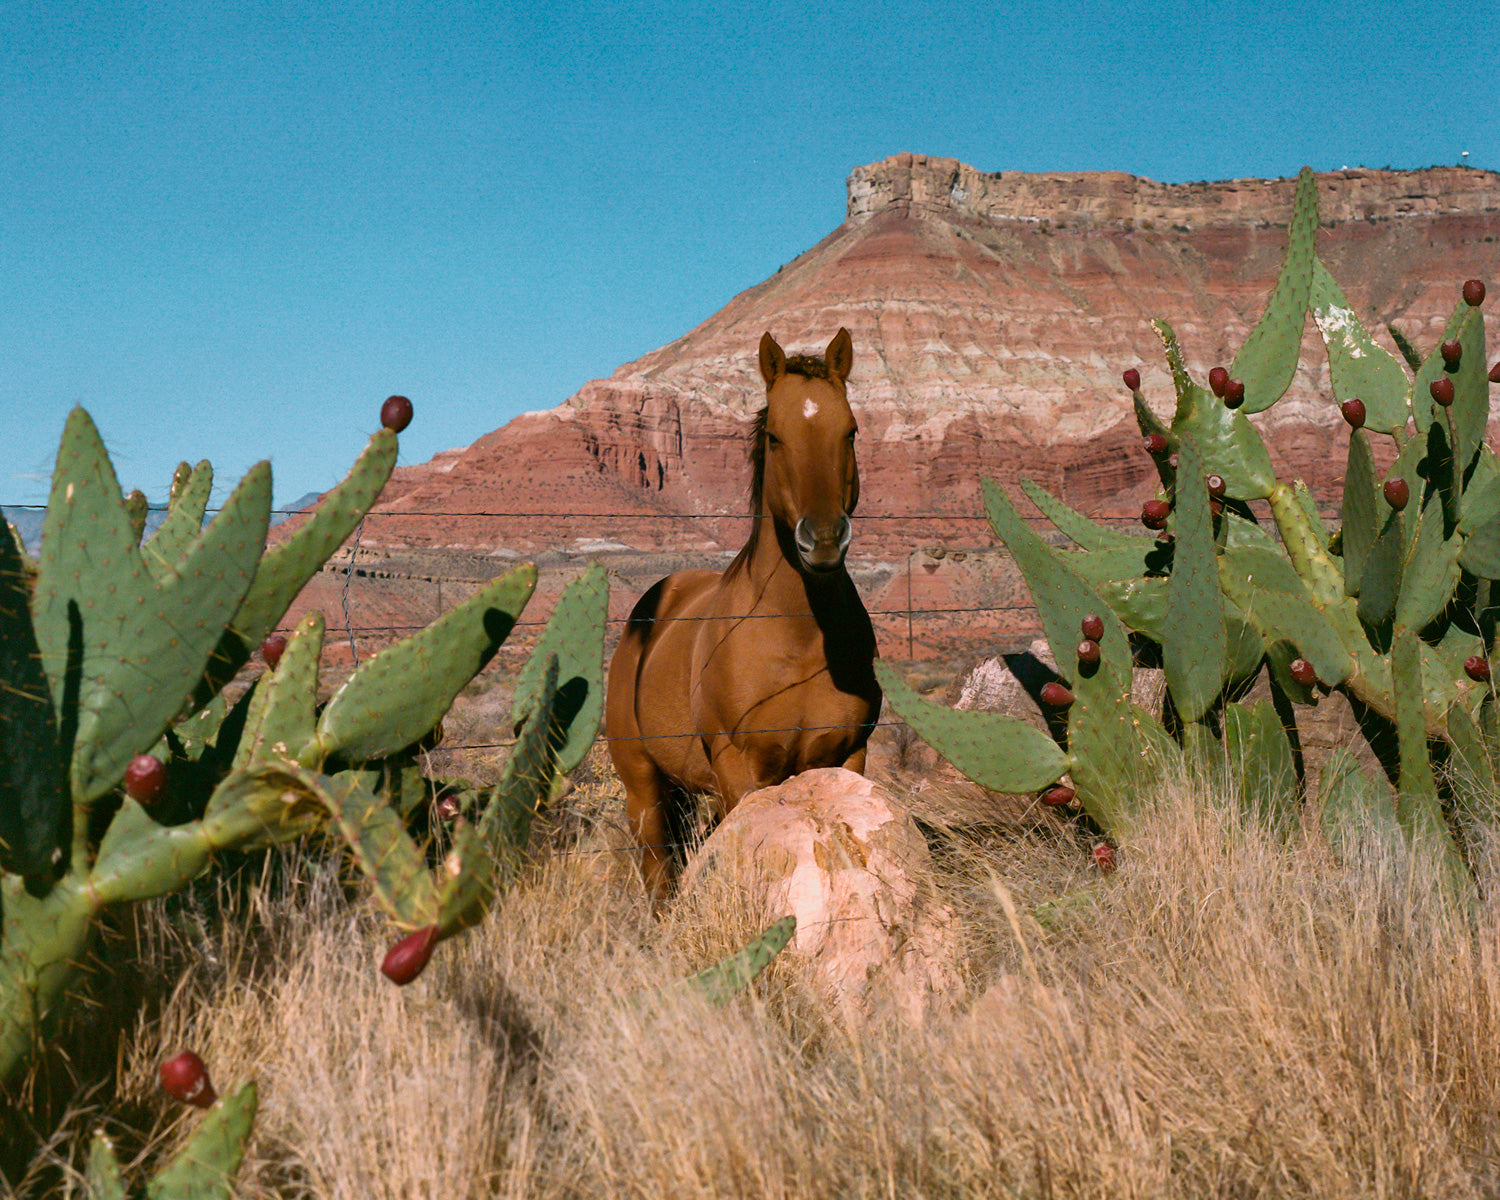 horse standing by cactus in desert